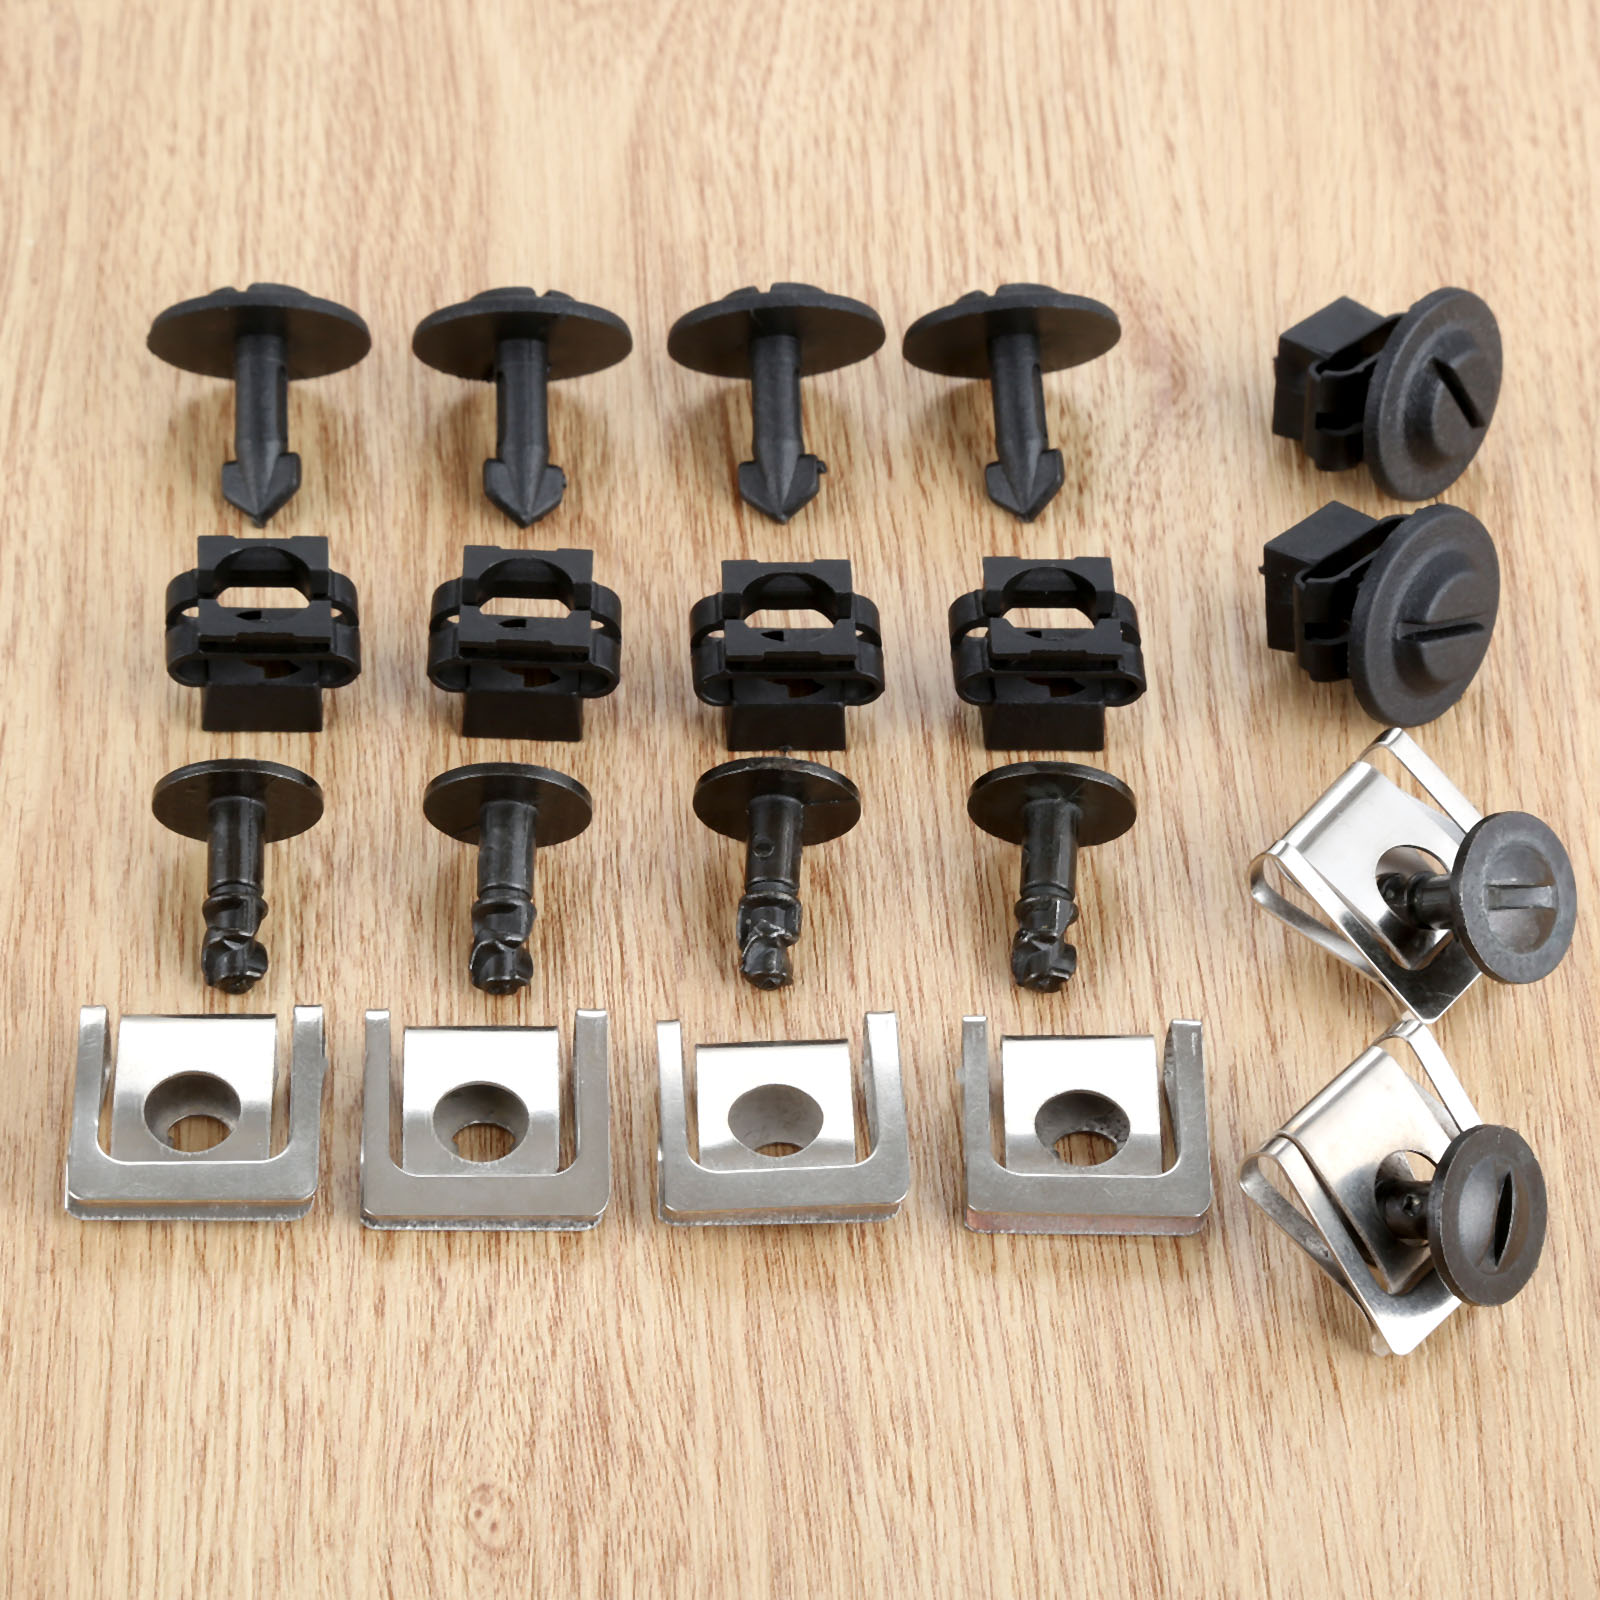 10x UNDER ENGINE /& GEARBOX UNDERTRAY COVER CLIPS FASTENERS For AUDI BMW